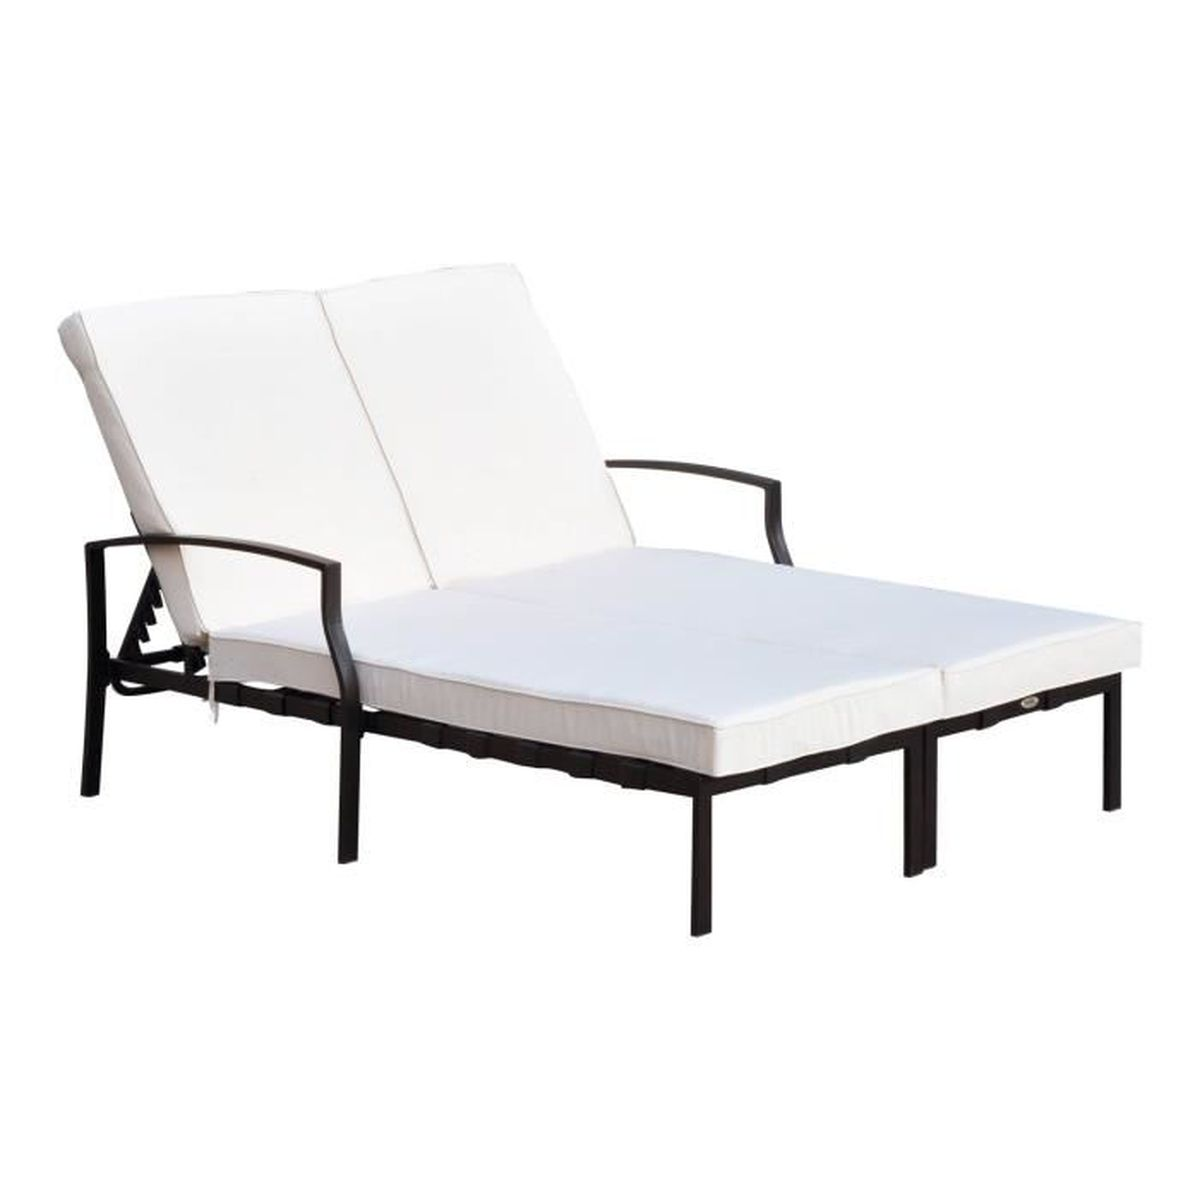 outsunny bain de soleil chaise longue 2 places lit de. Black Bedroom Furniture Sets. Home Design Ideas